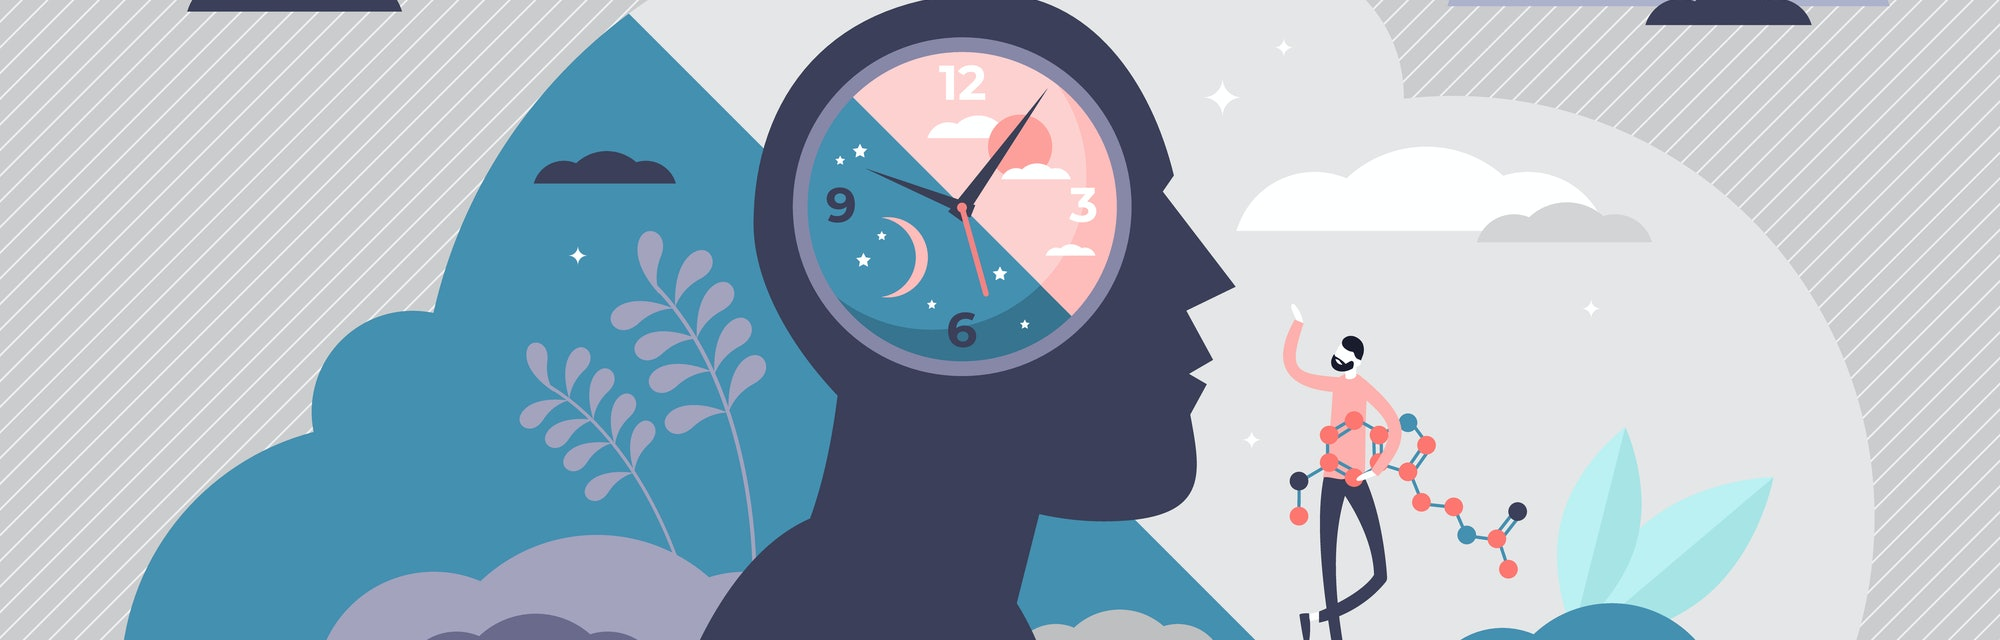 Circadian rhythm concept, tiny person vector illustration. Day and night cycle scheme. Daily human body inner regulation schedule. Natural sleep-wake biological process. Abstract head with a clock.